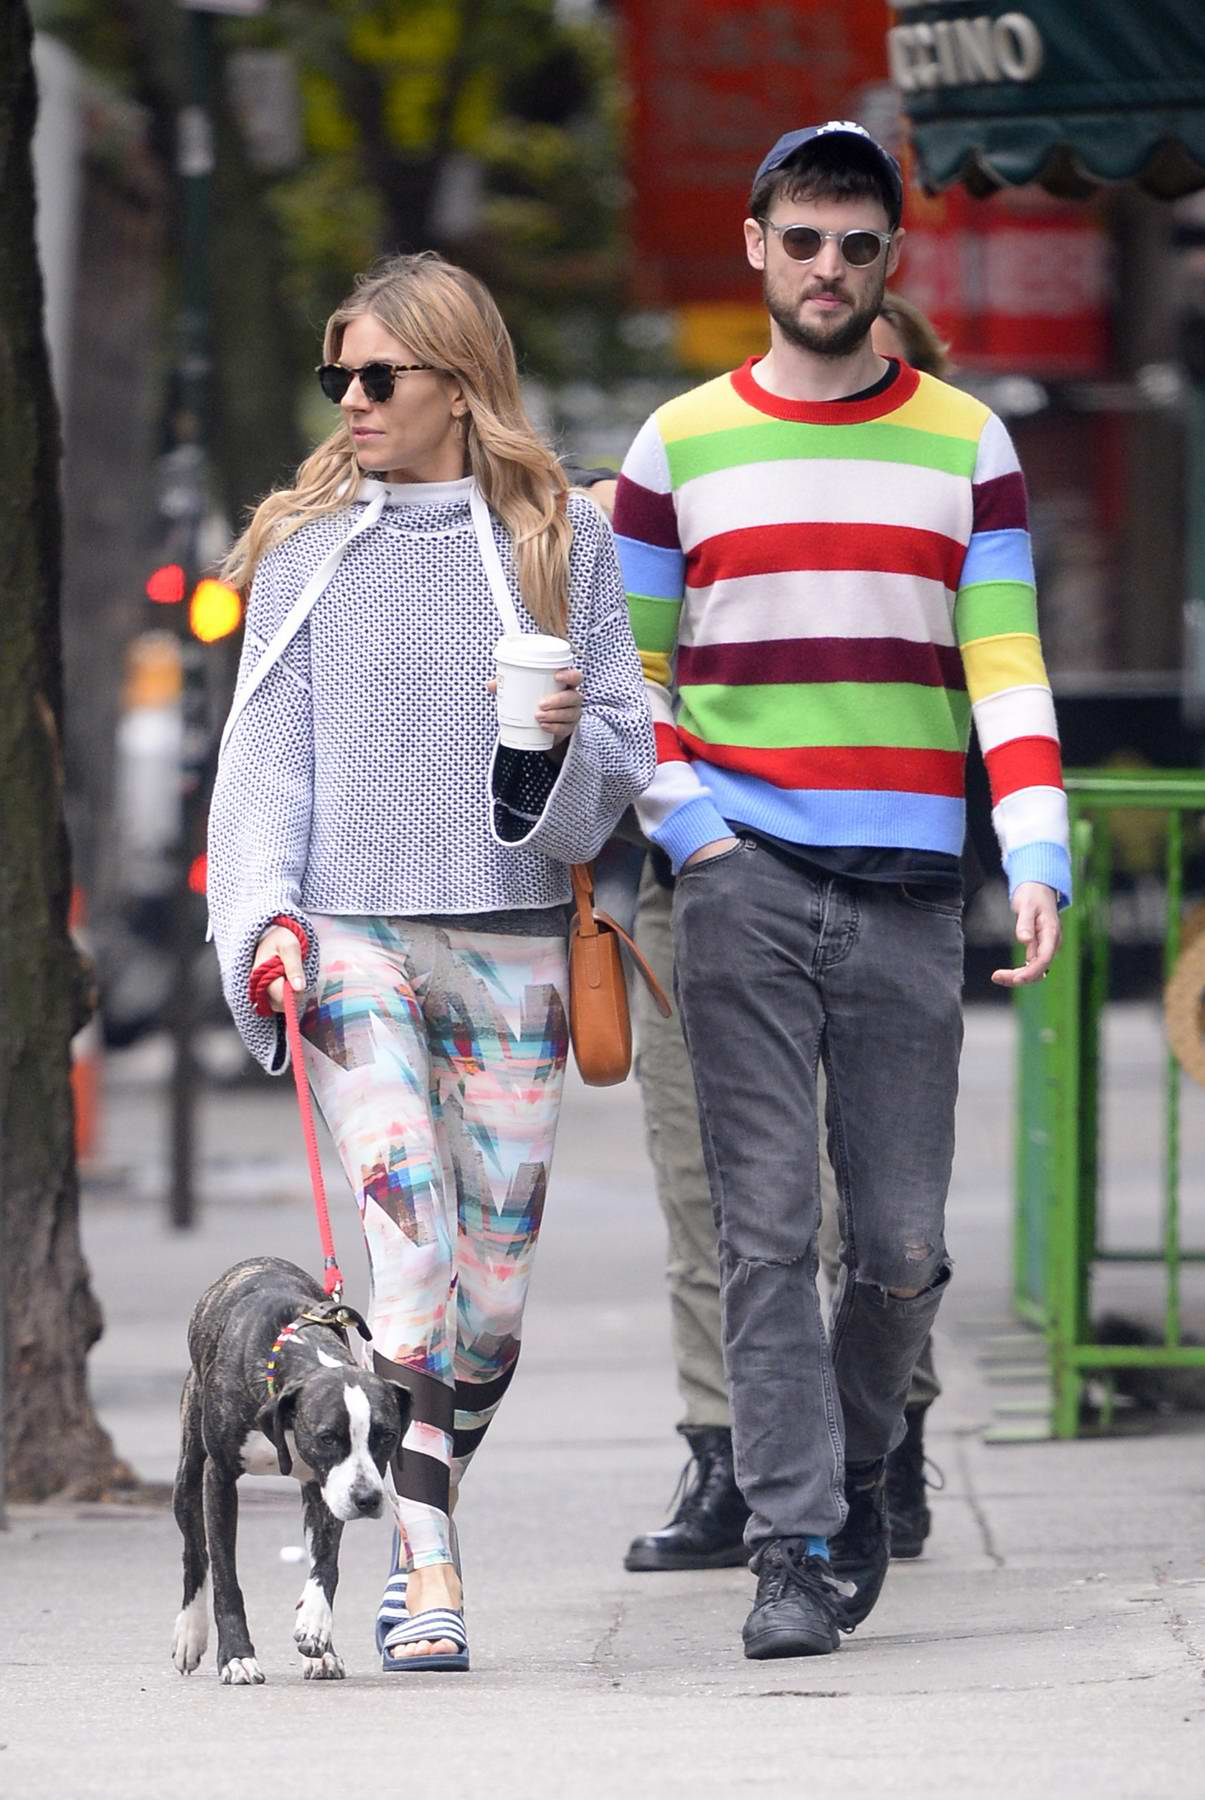 Sienna Miller and Ex Tom Sturridge walk their dog at the dog park in the West Village in New York City